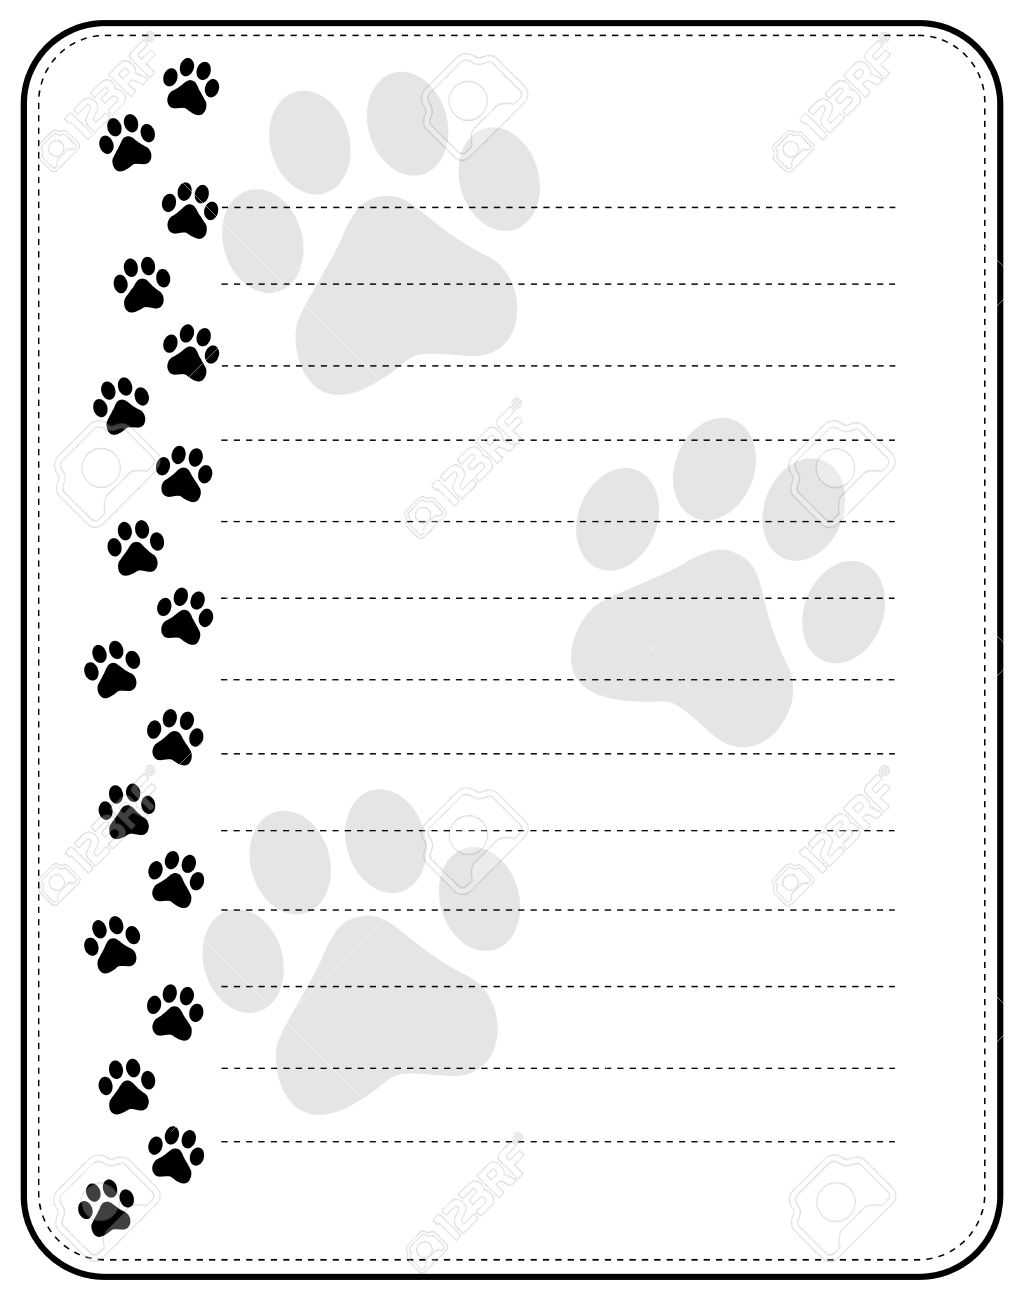 Black Dog Paw Print Left Border Frame With Lines Royalty Free